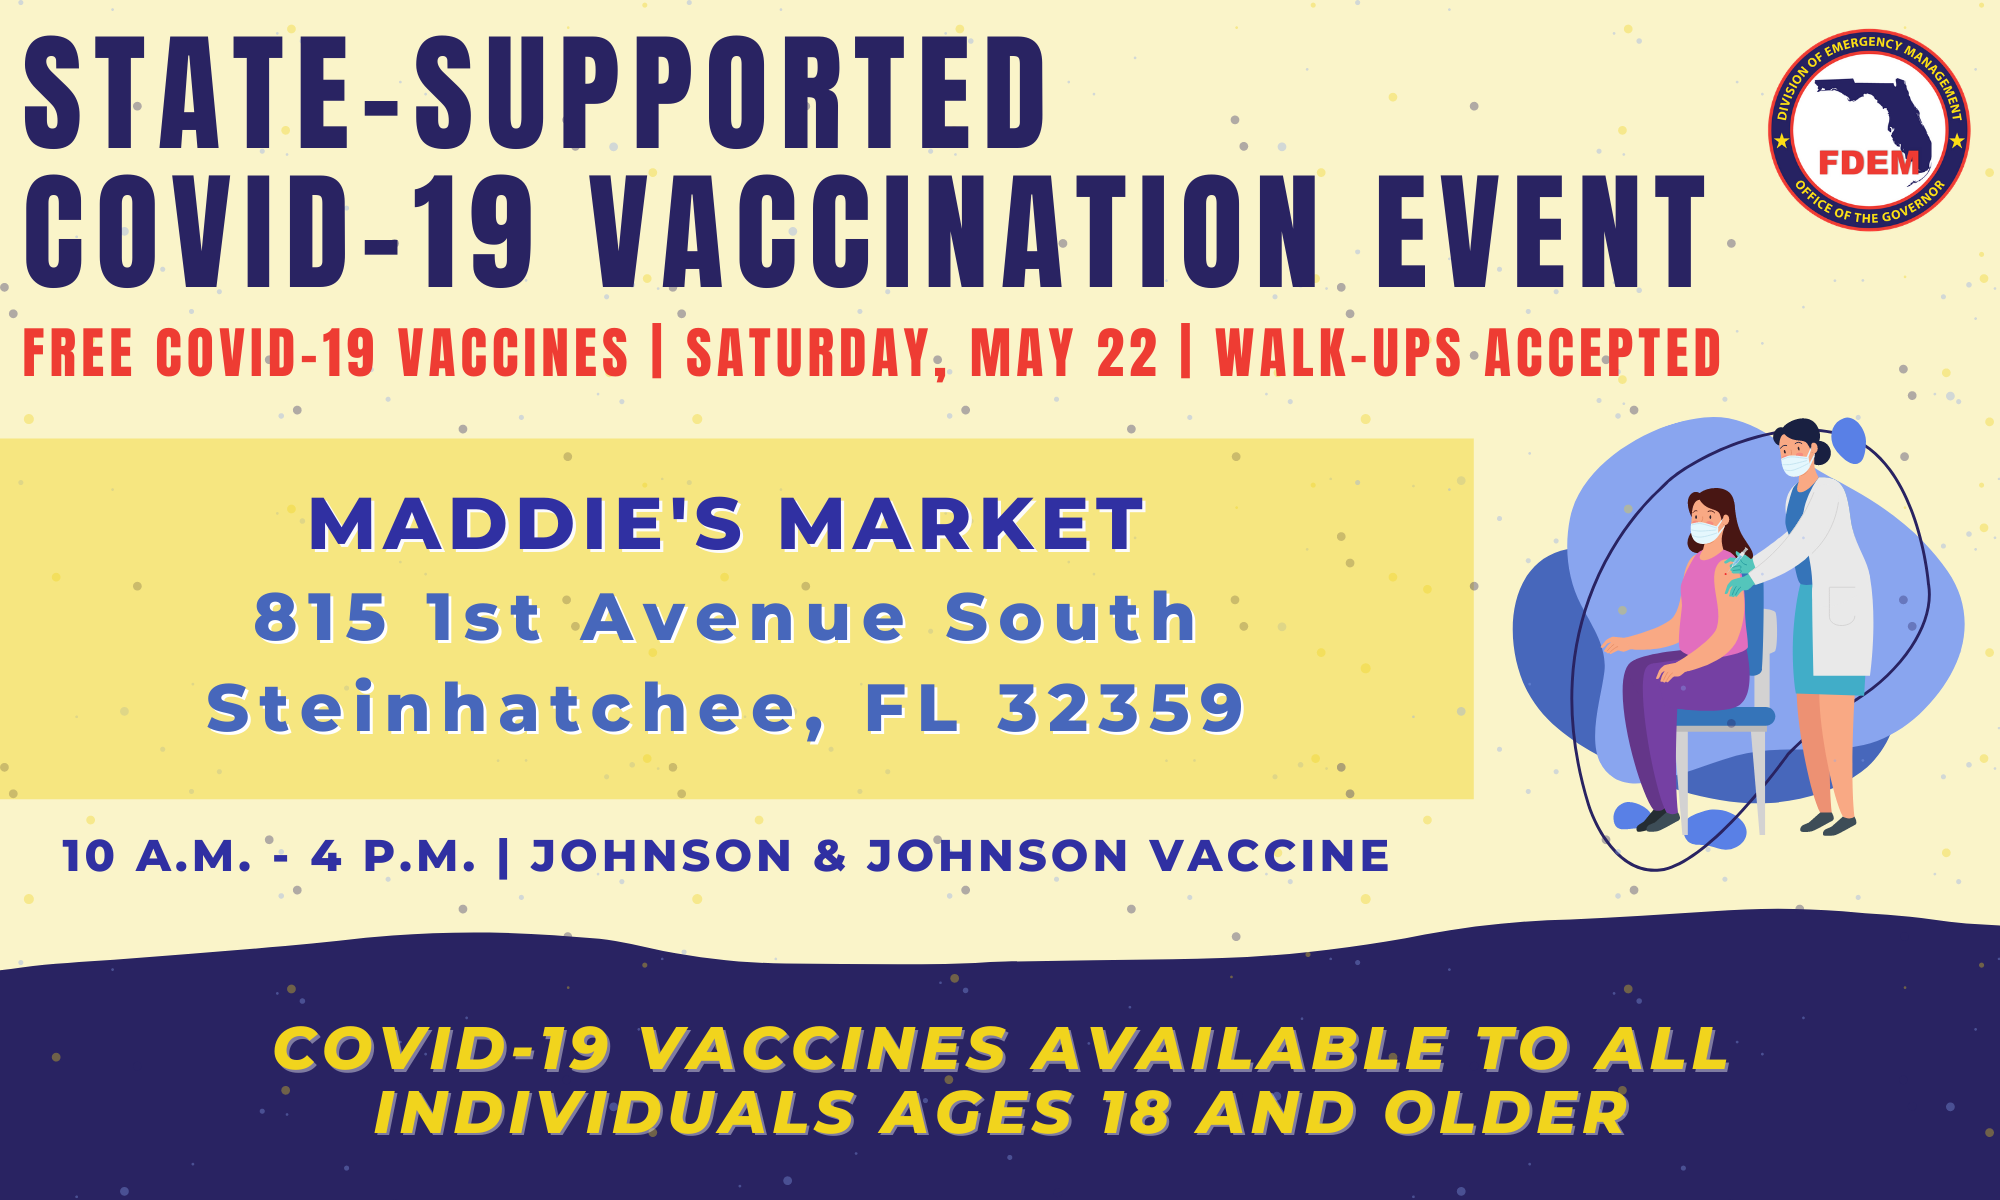 Vaccine Information at Maddie's Market on May 22, 2021